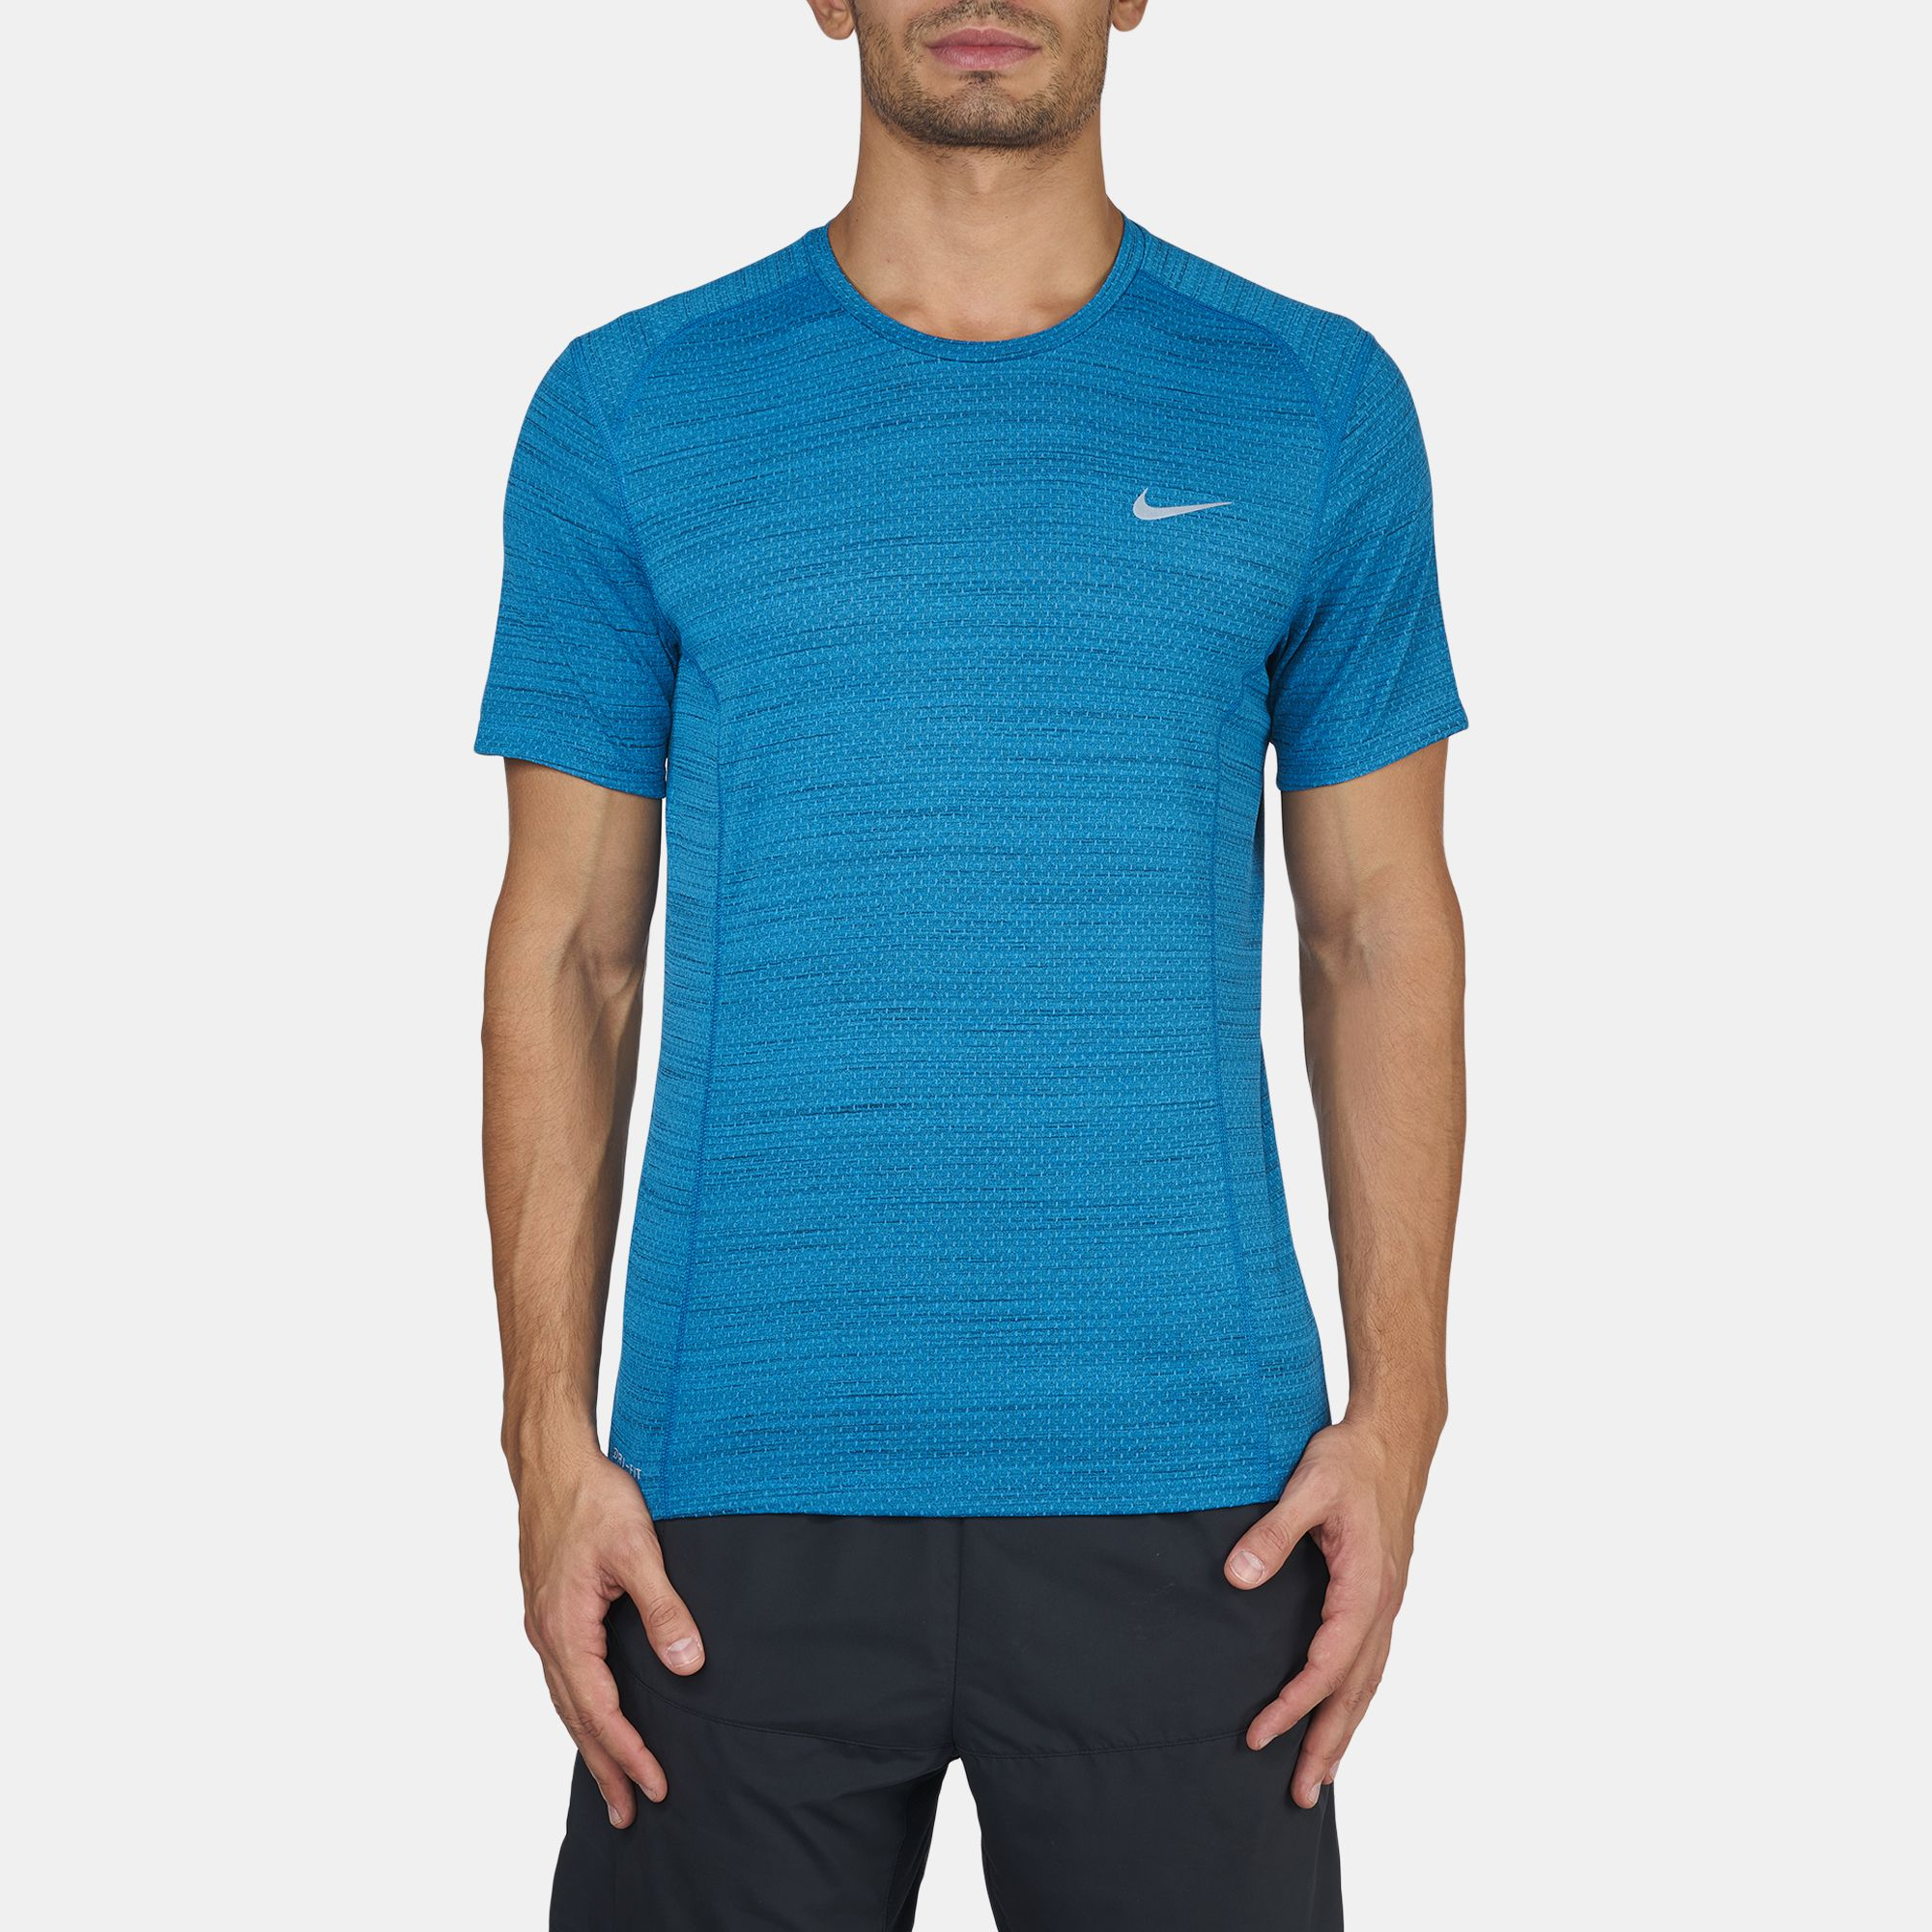 fe153a4da179 Shop Blue Nike Dri-FIT Cool Miler Short Sleeve T-Shirt for Mens by ...